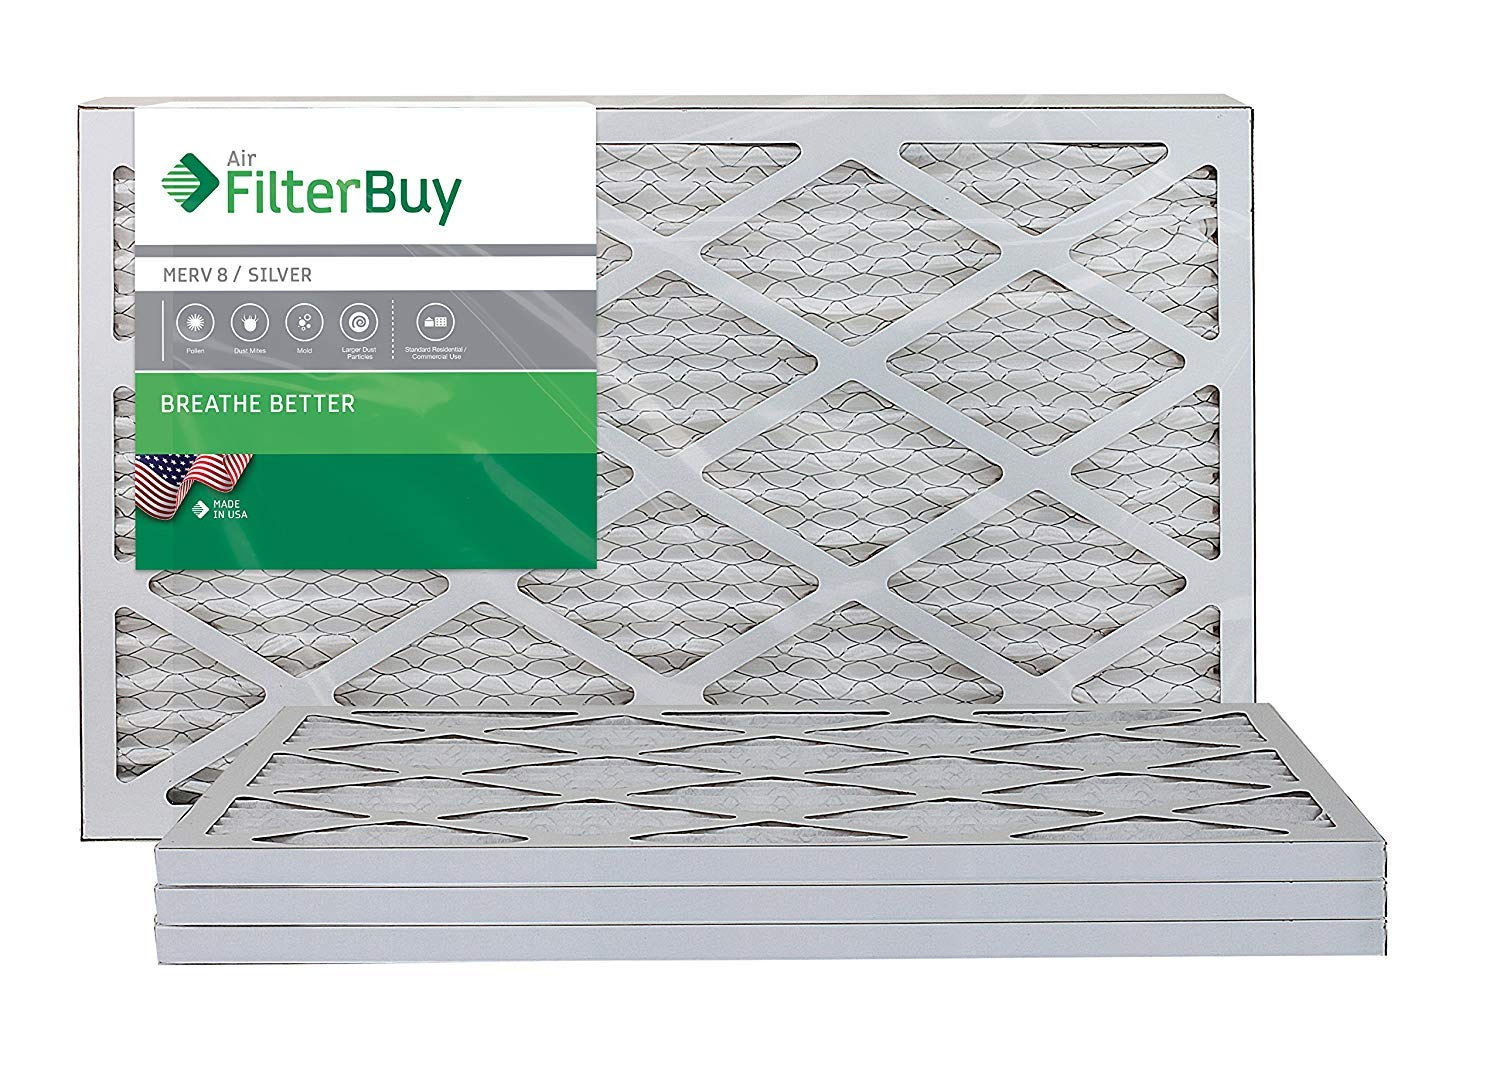 1. FilterBuy AFB MERV 8 14x20x1 Pleated AC Furnace Air Filter, (Pack of 4 Filters), 14x20x1 - Silver